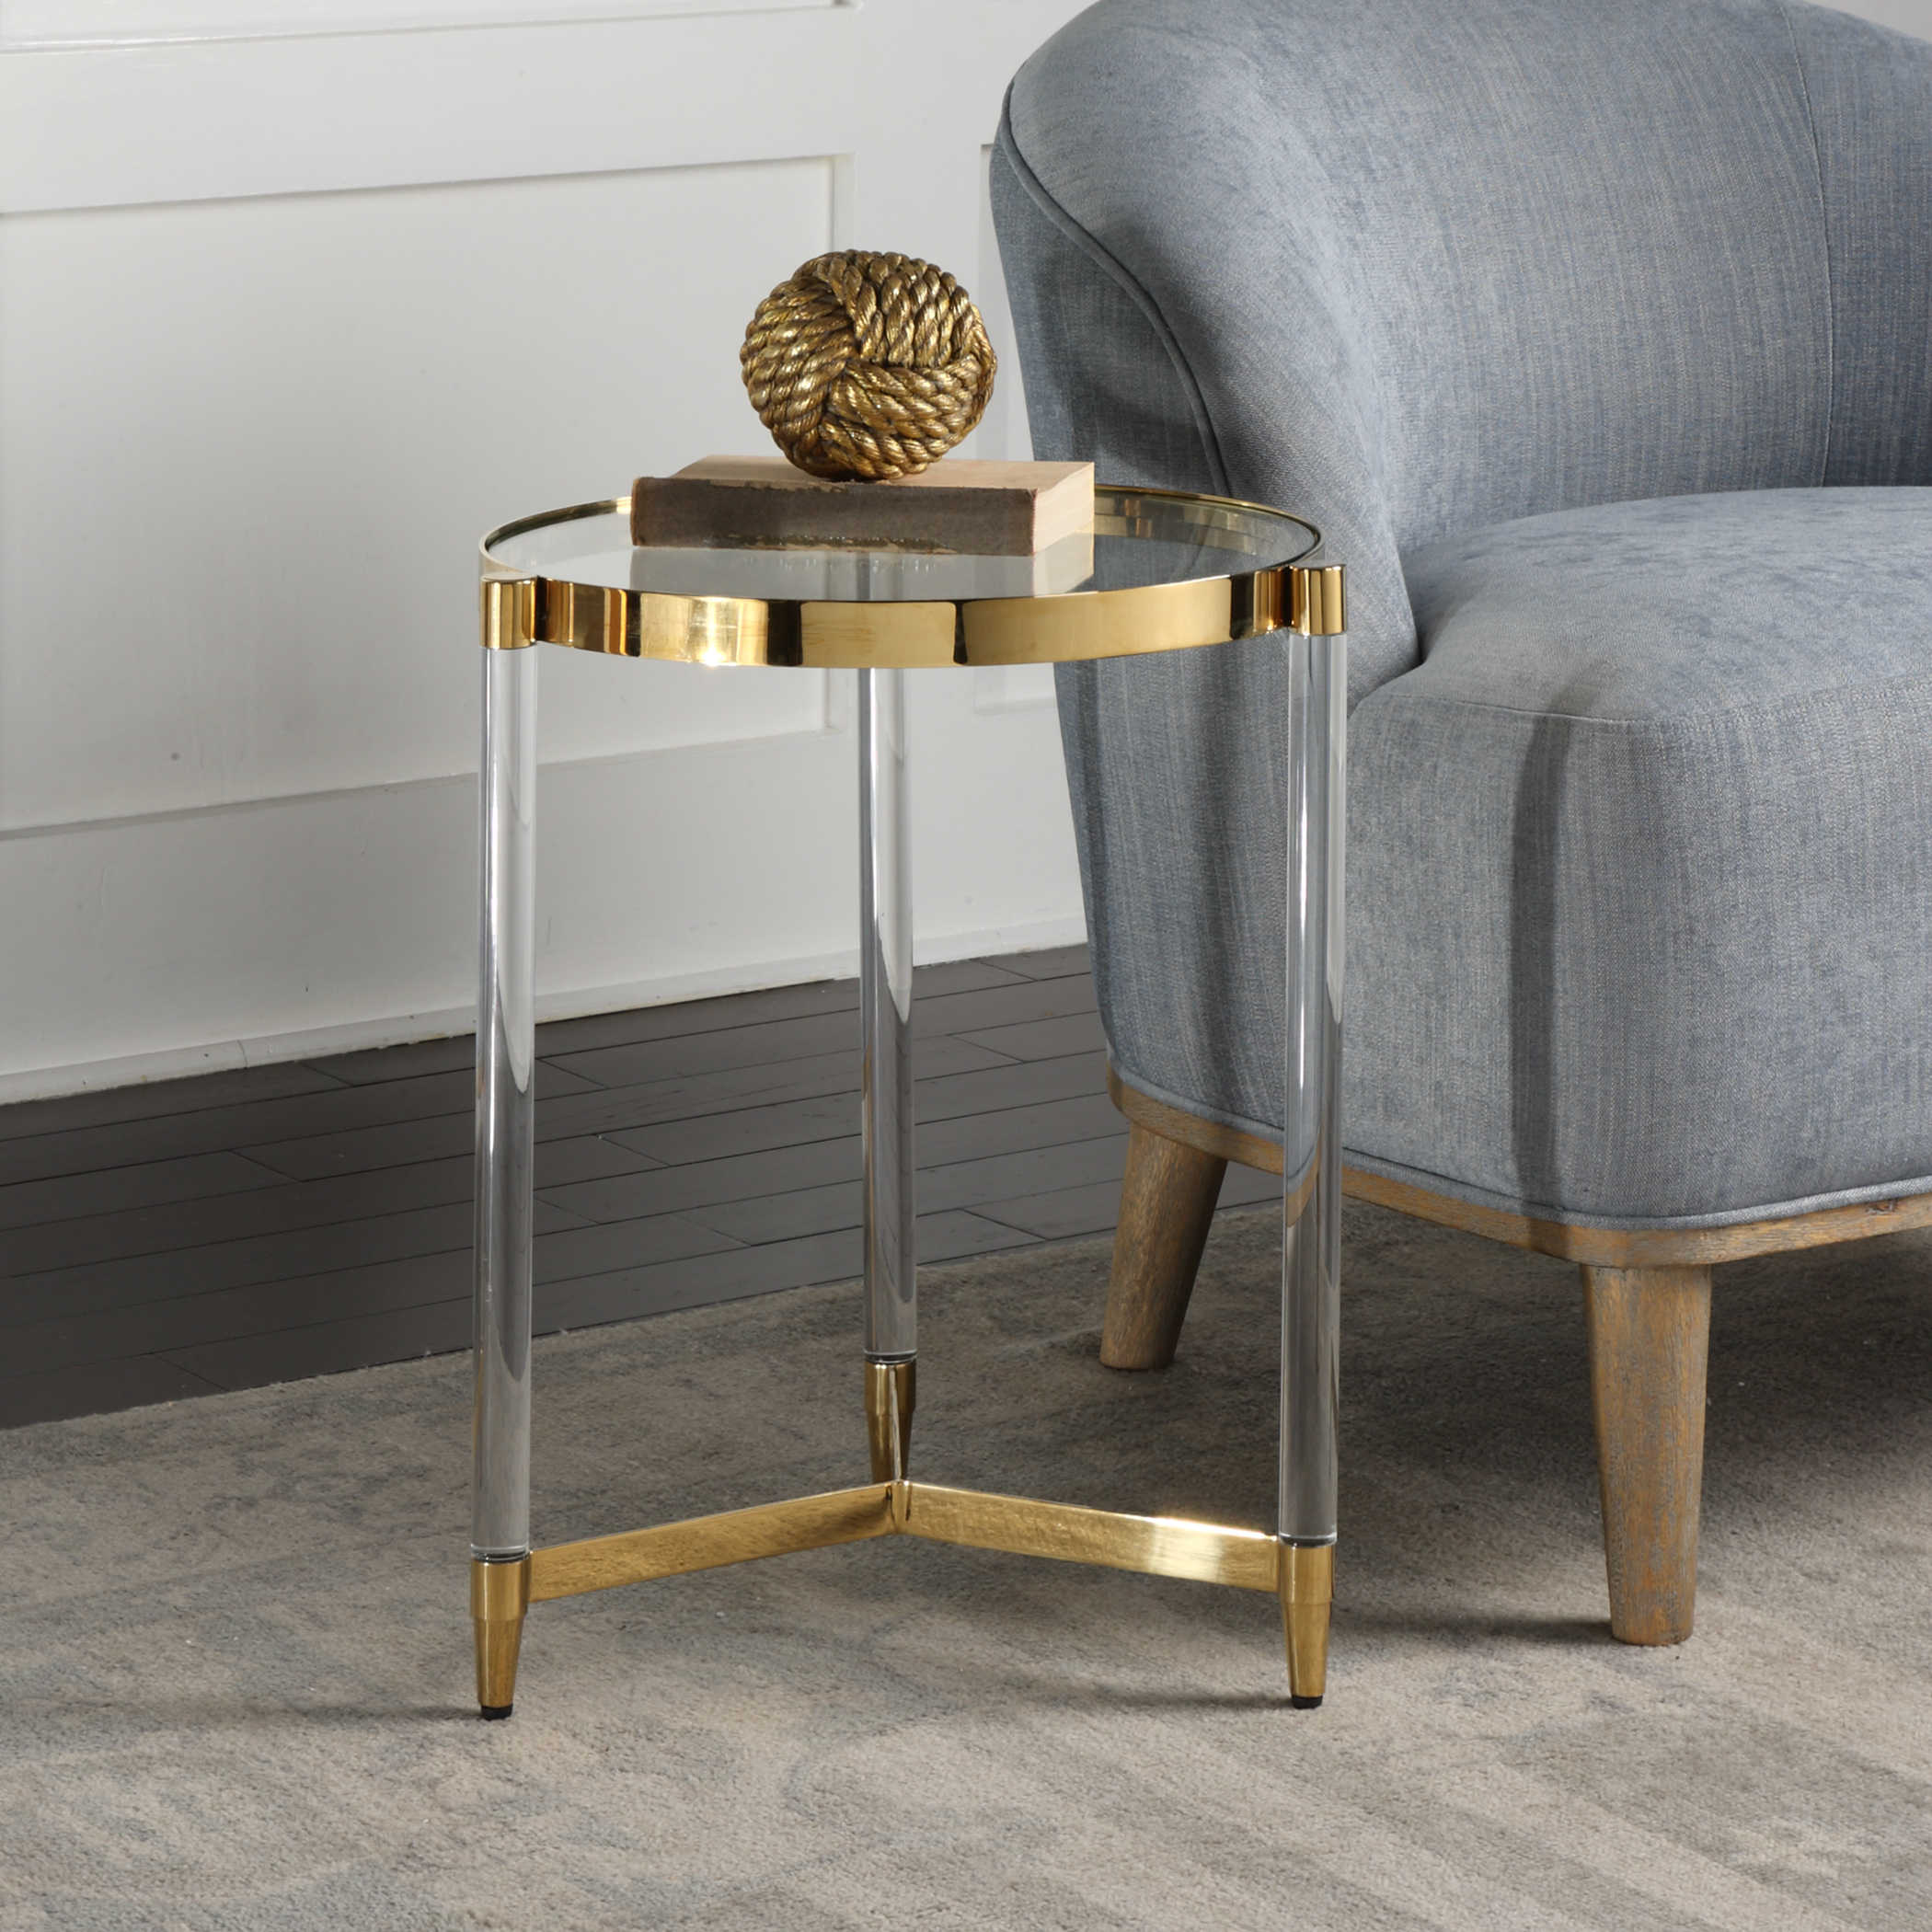 uttermost kellen glass accent table behind couch better homes and gardens coffee antique drop leaf dining runner hallway chest furniture outdoor iron inch nightstand deck set